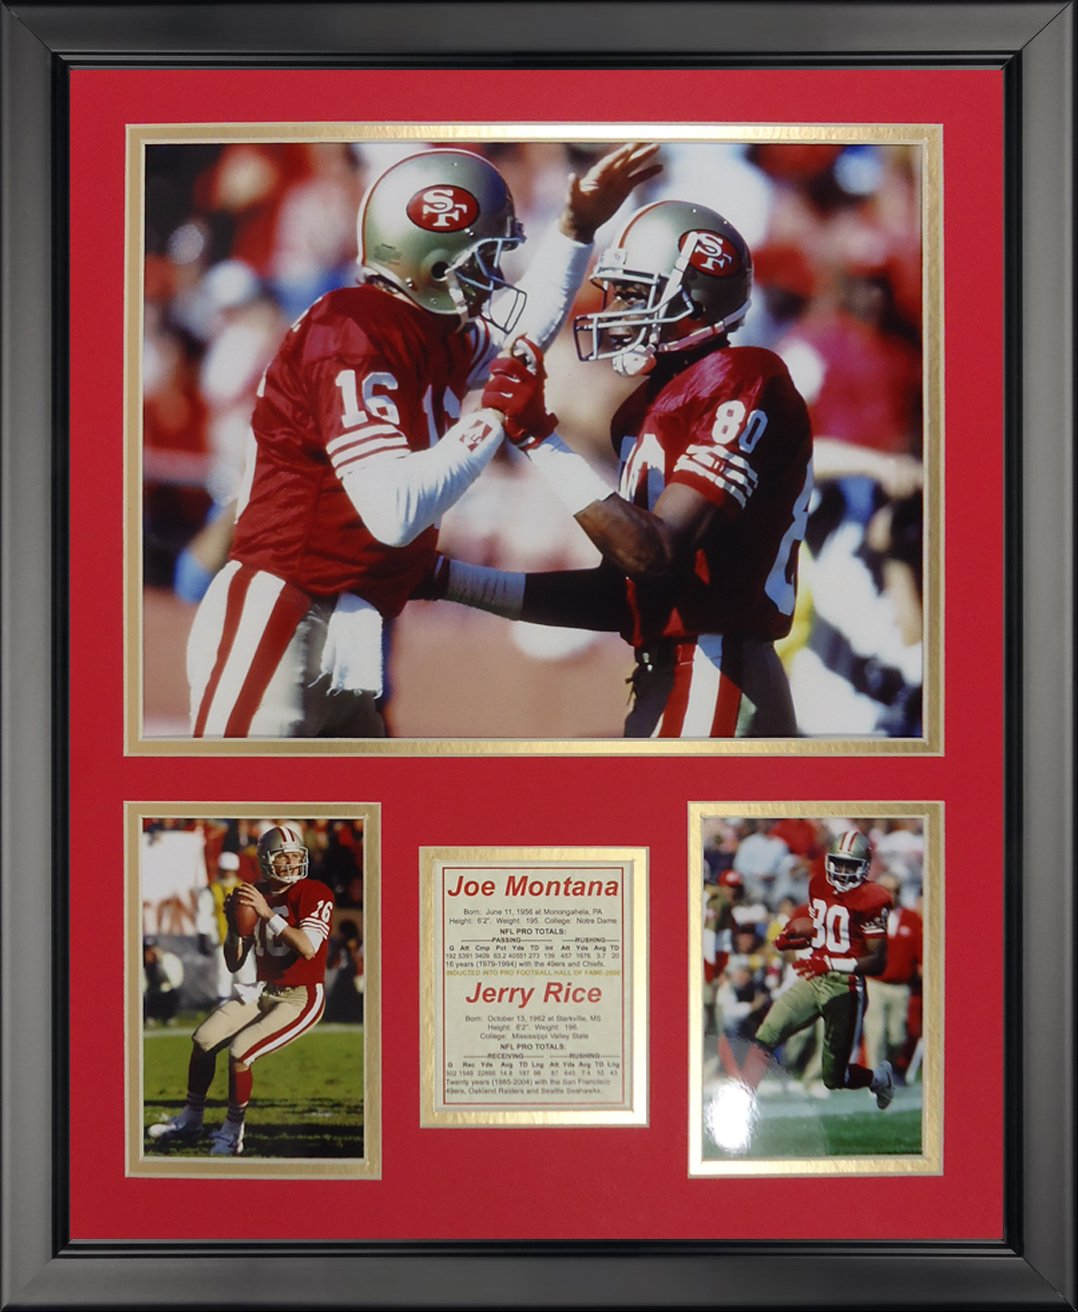 Legends Never Die San Francisco 49ers - Montana-Rice Framed Photo Collage, 16'' x 20''